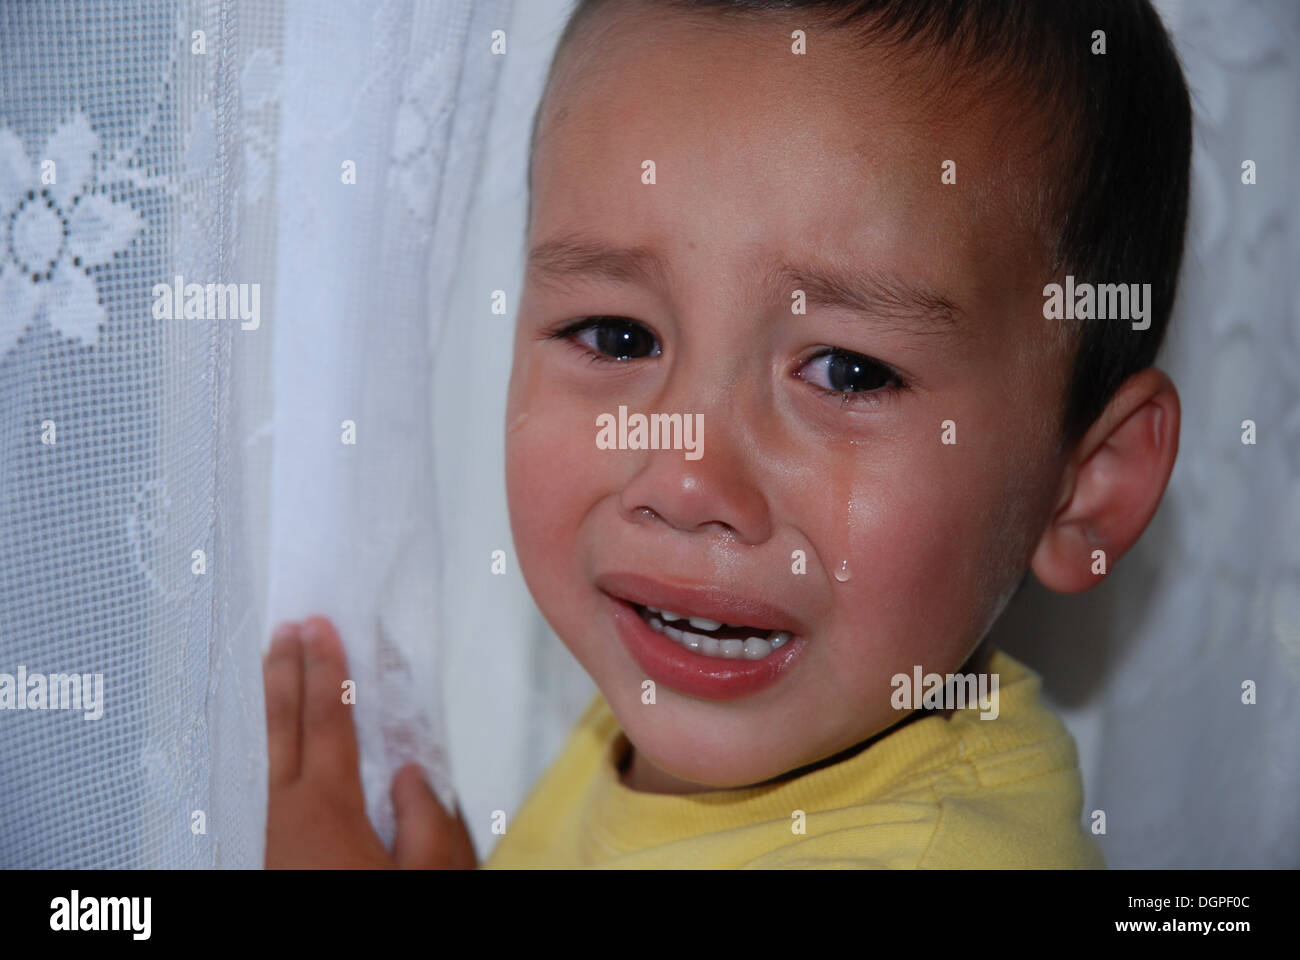 A young child crying, upset and unhappy - Stock Image